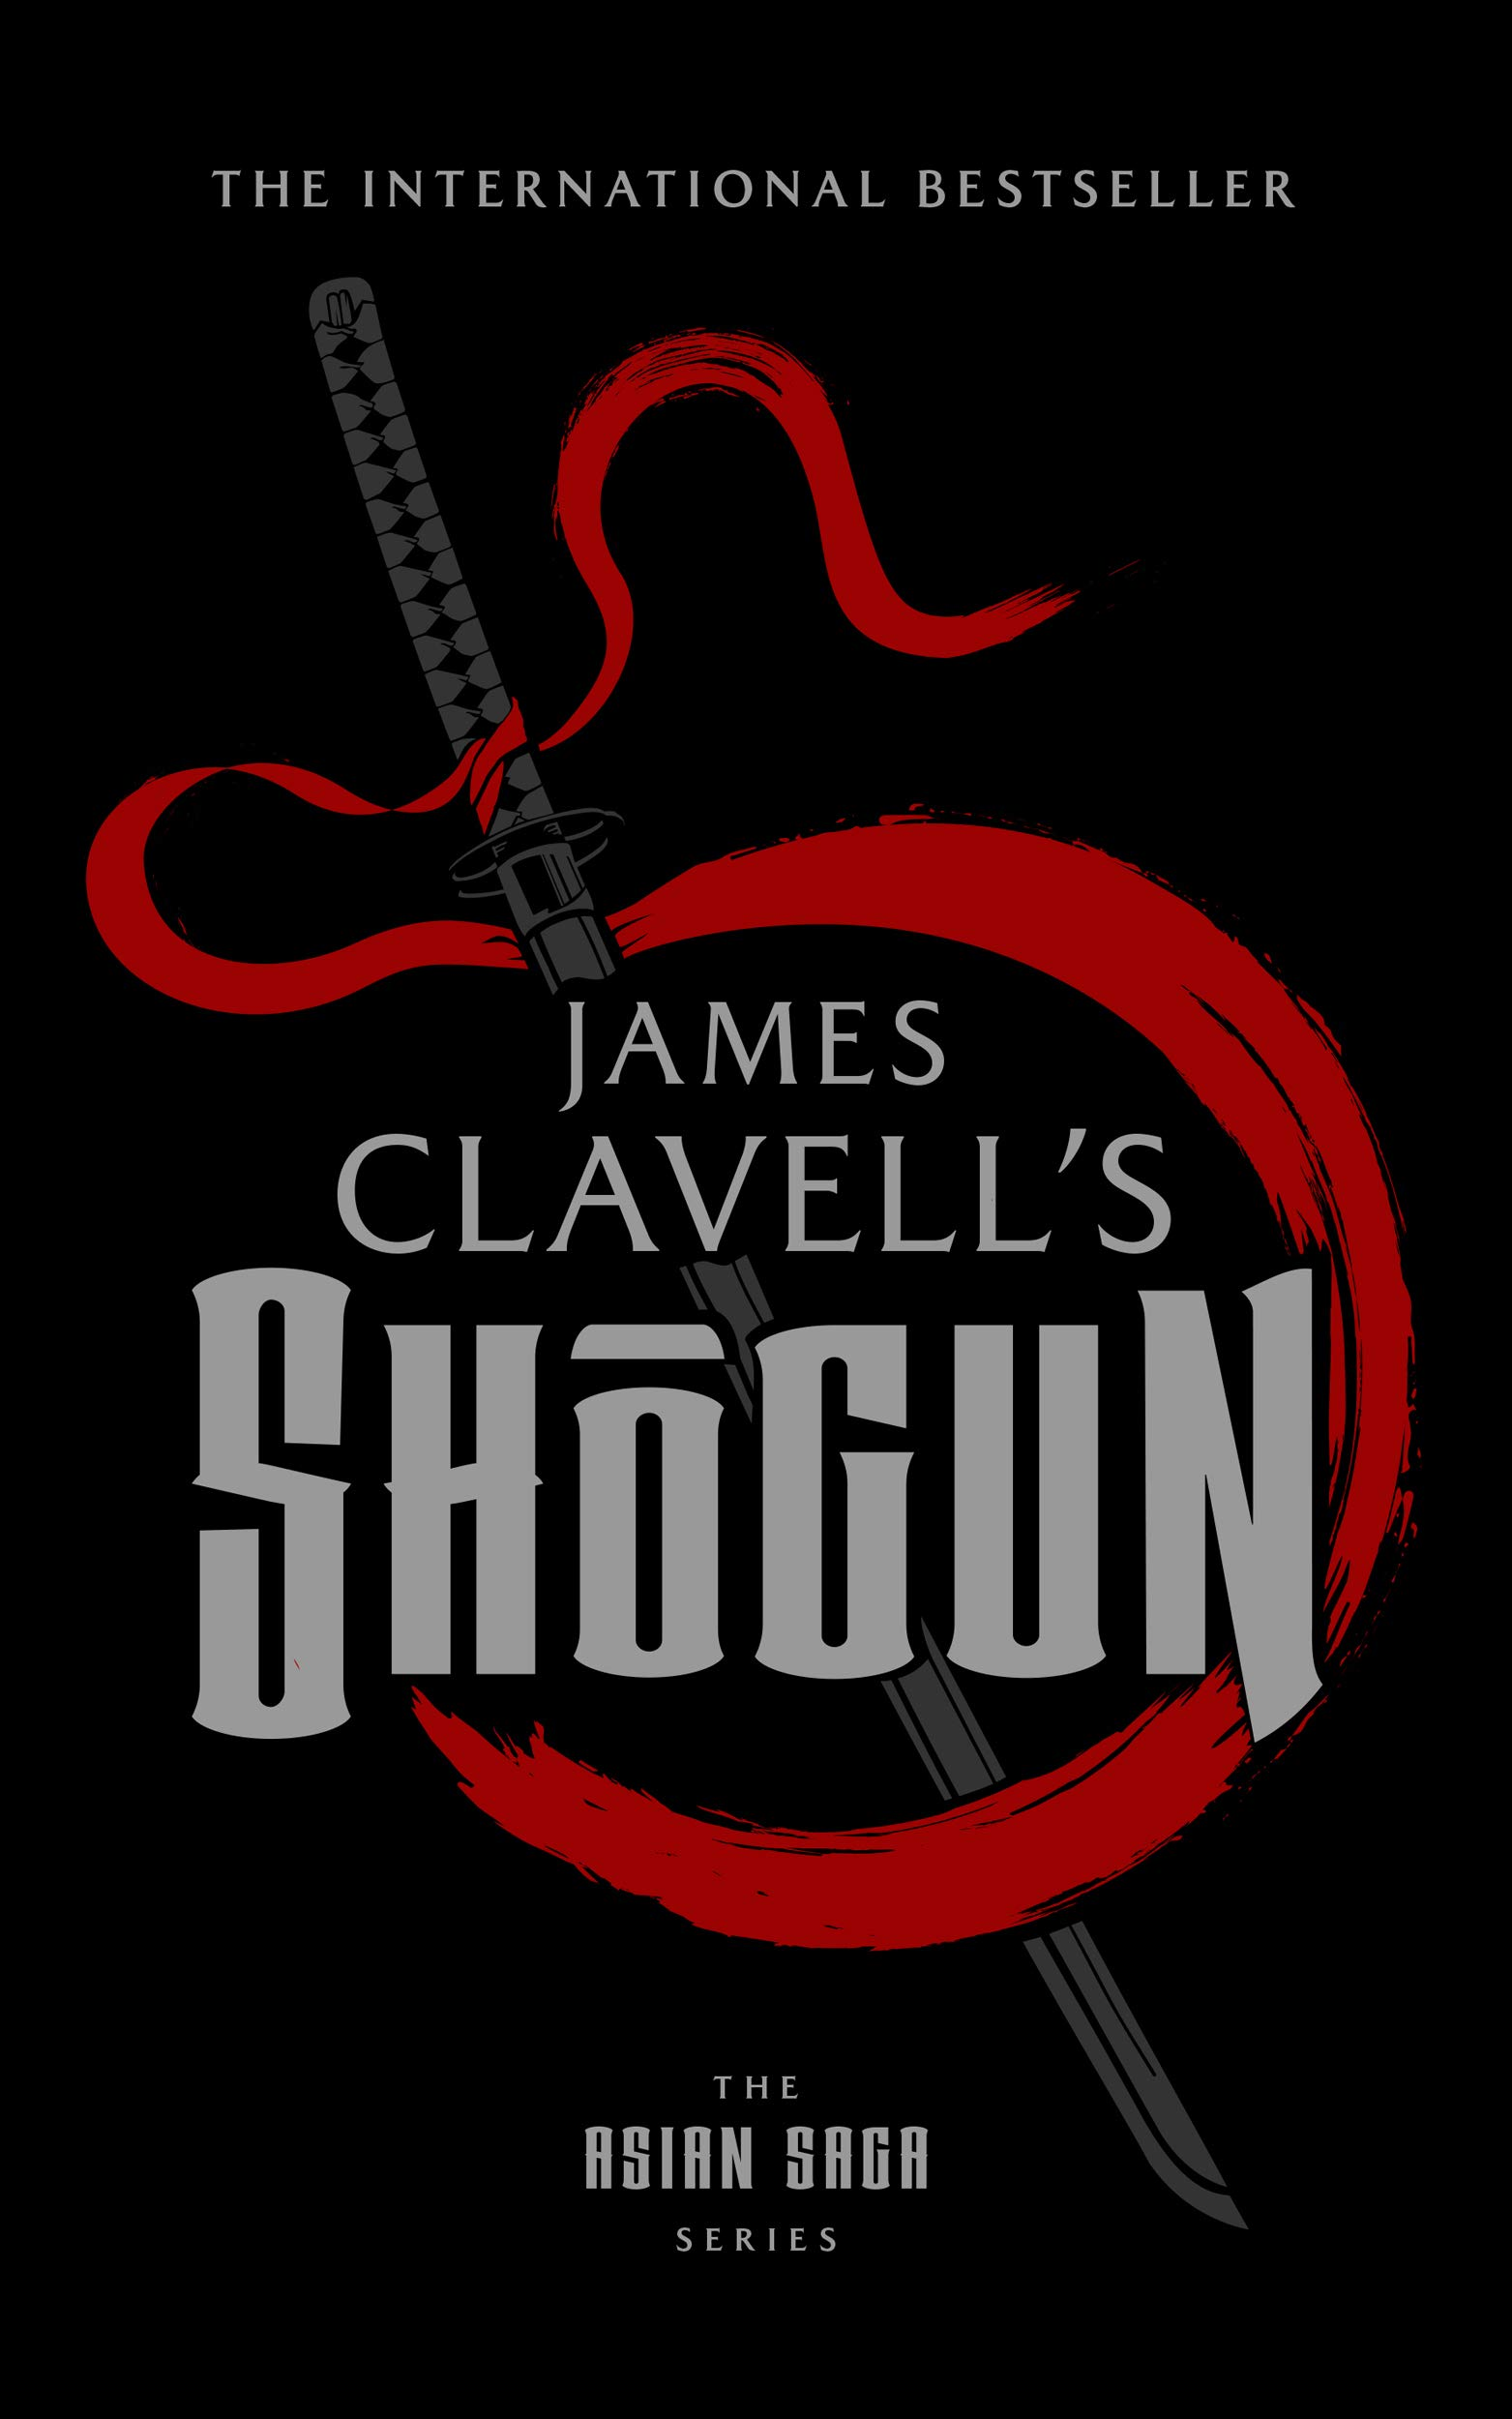 James clavell asian series